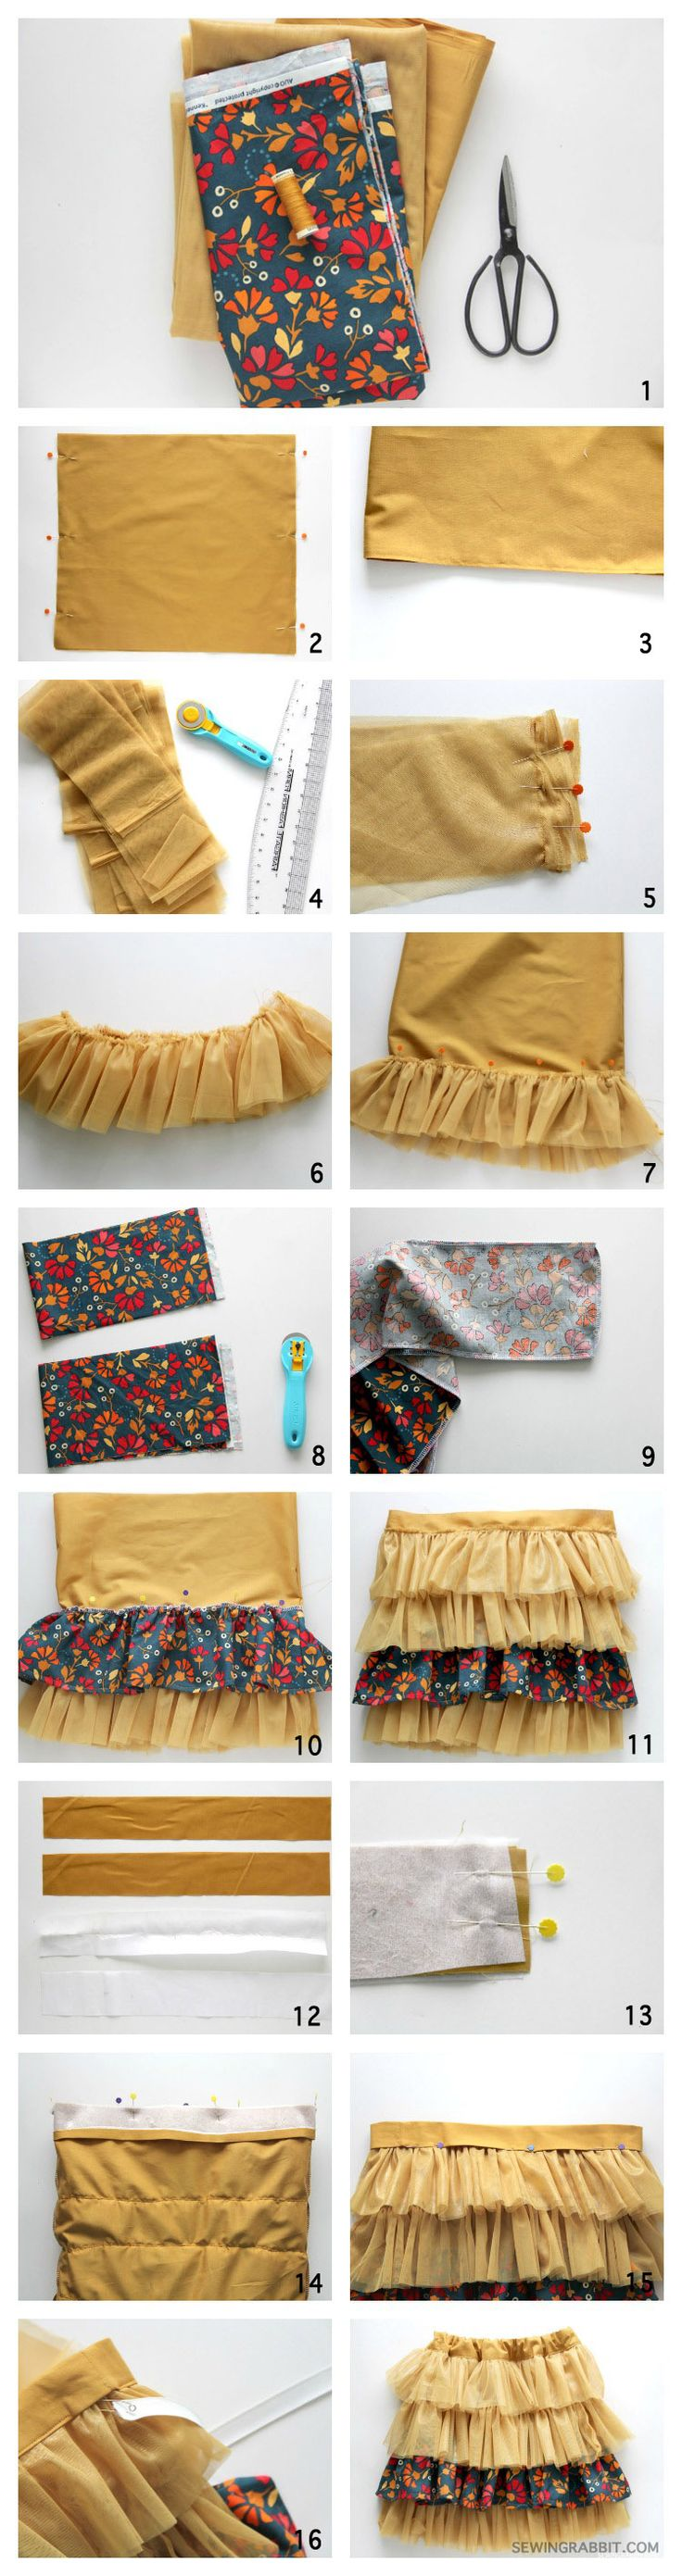 241 best create with the sewing rabbit images on pinterest diy